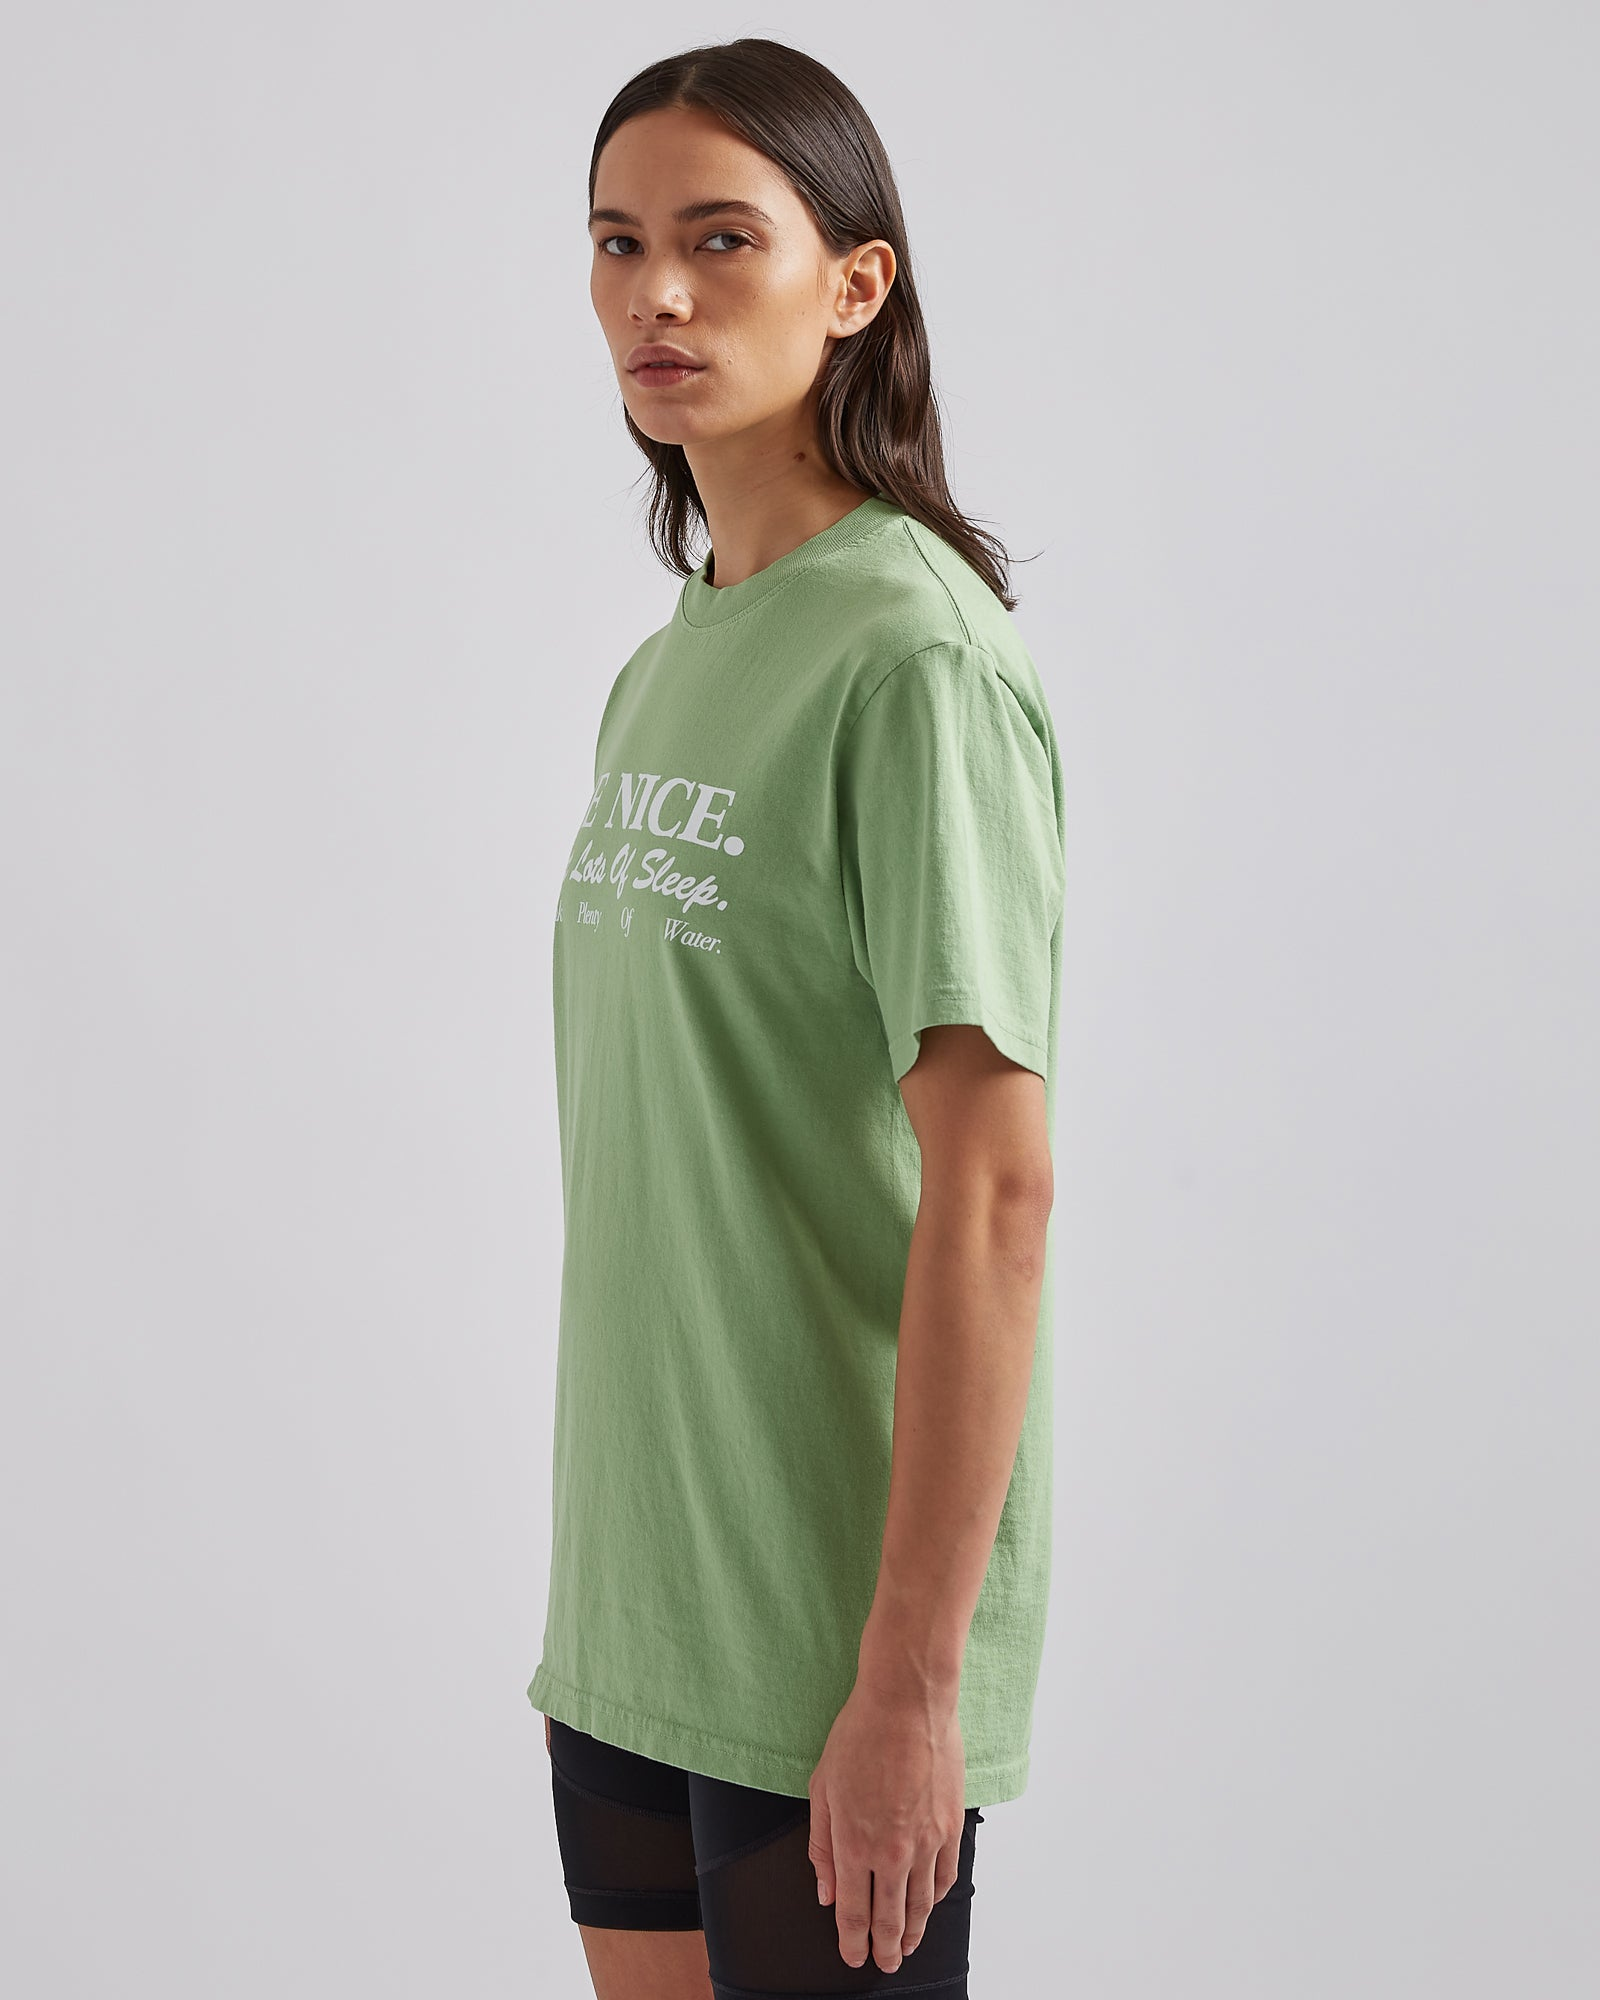 Be Nice T-Shirt in Pistachio